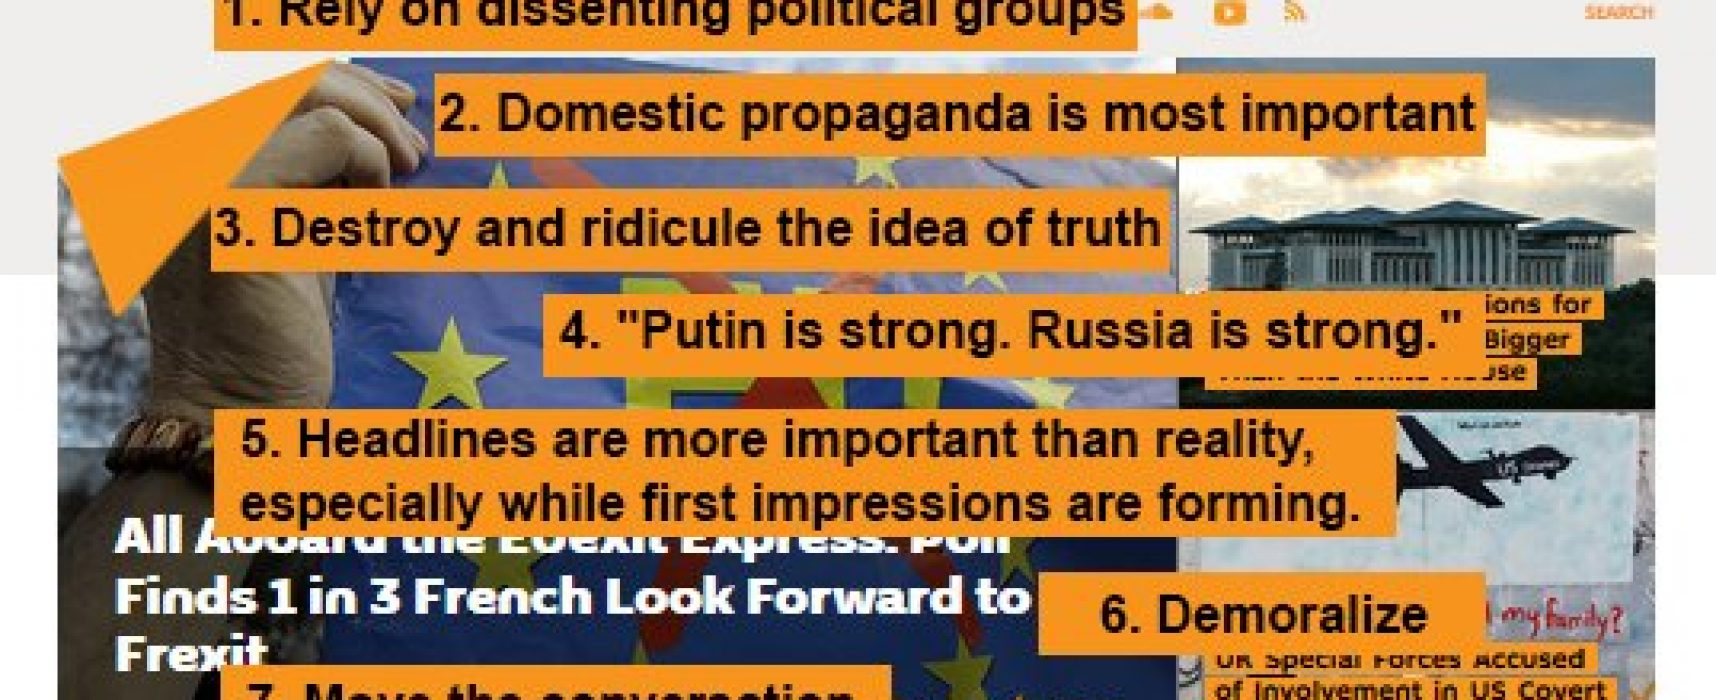 Kremlin Watch Monitor. May 23, 2016